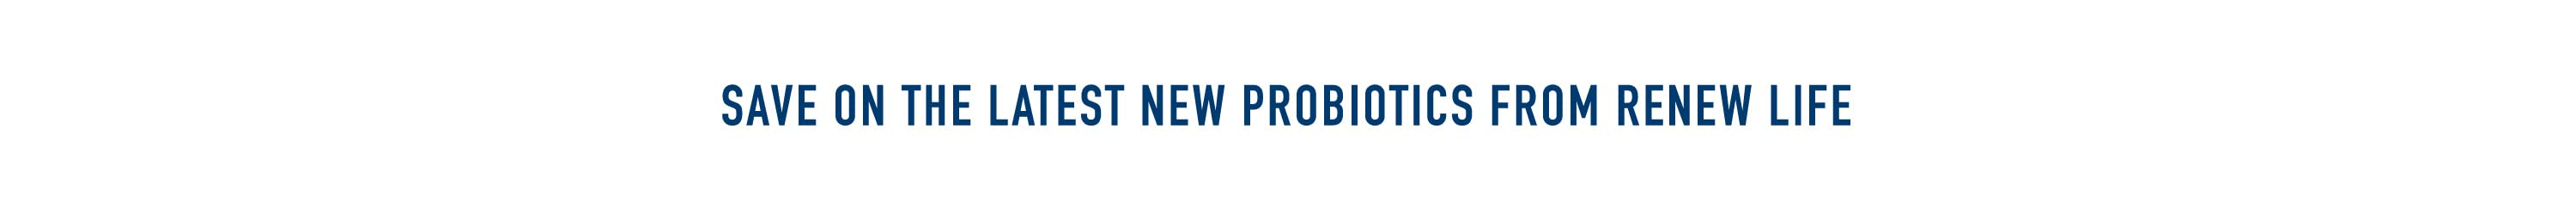 Save on the Latest New Probiotics from Renew Life